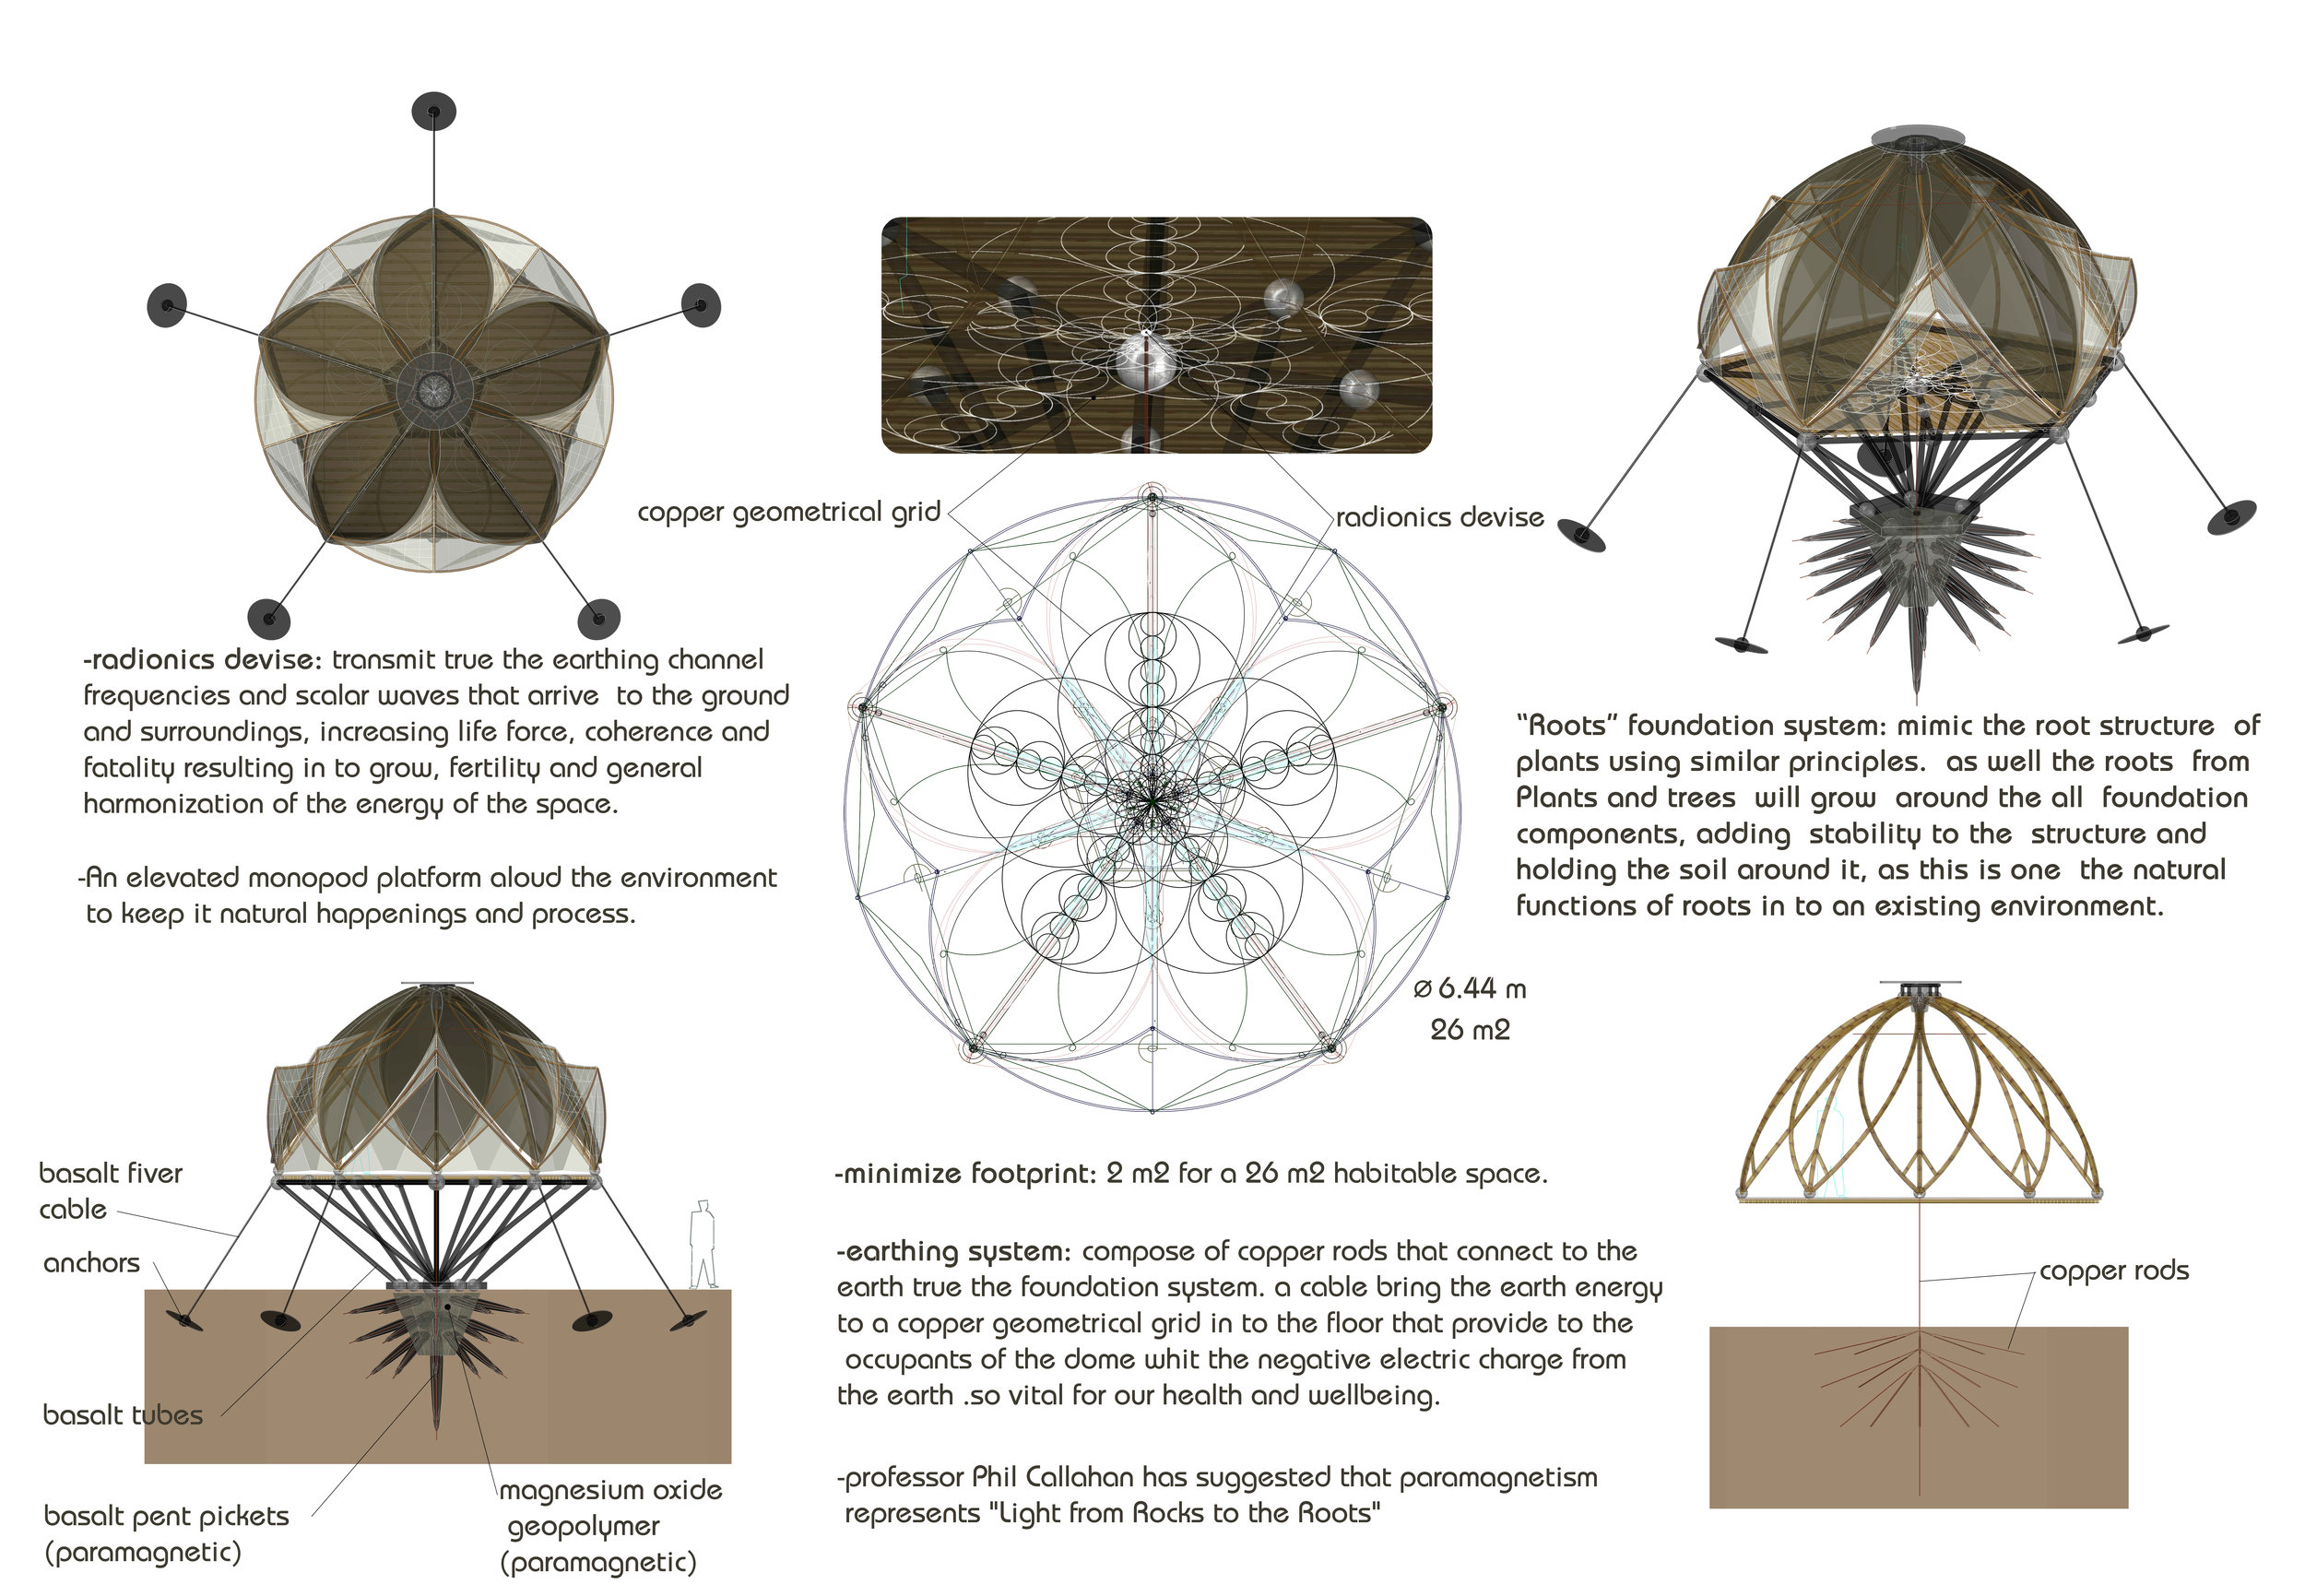 phi-dome-foundation